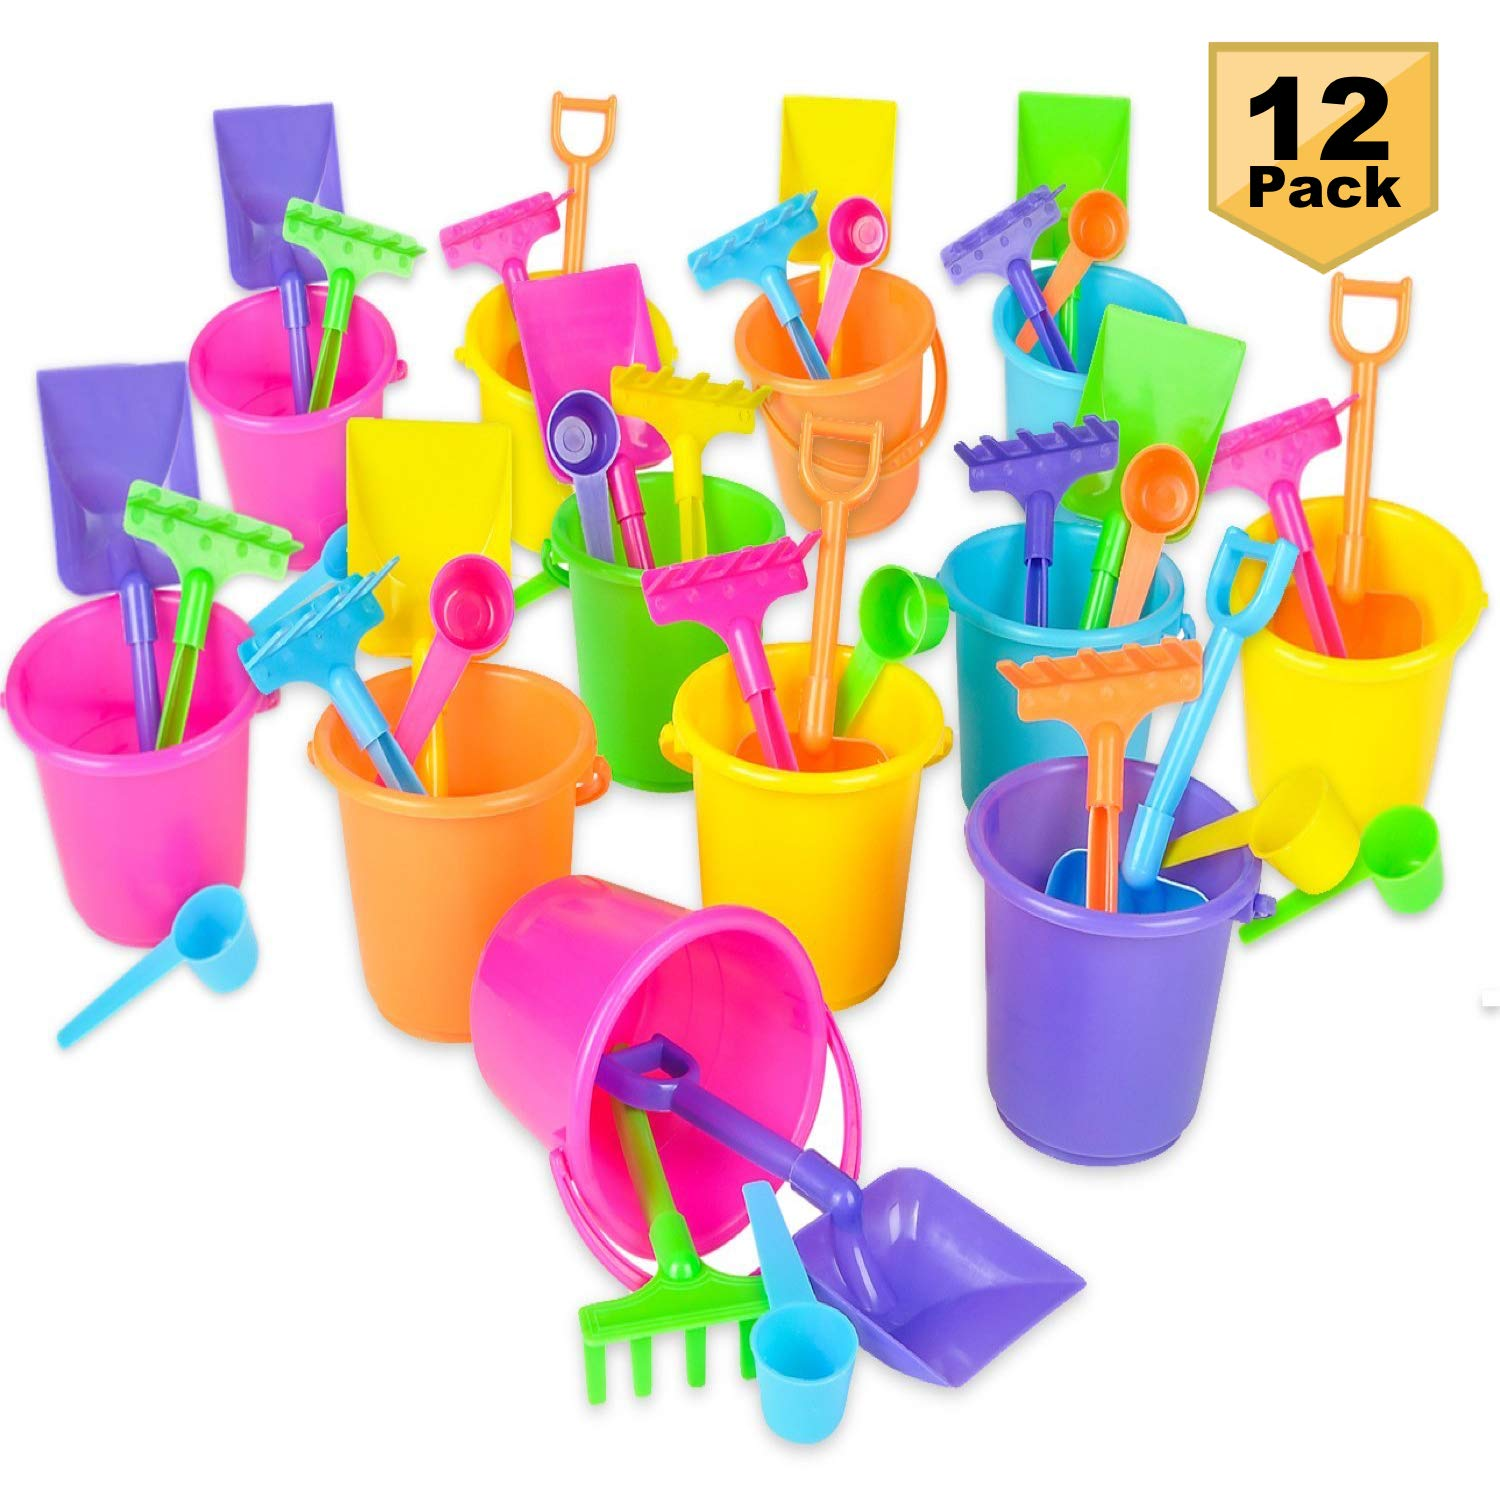 Bedwina Beach Bucket Shovel Set - (Pack of 12) Party Favor Sand Box Play Set Beach Sand Pail Includes 3-1/4'' Mini Bucket, Shovel, Rake, Scoop Beach Sand Toy Birthday Mermaid Theme